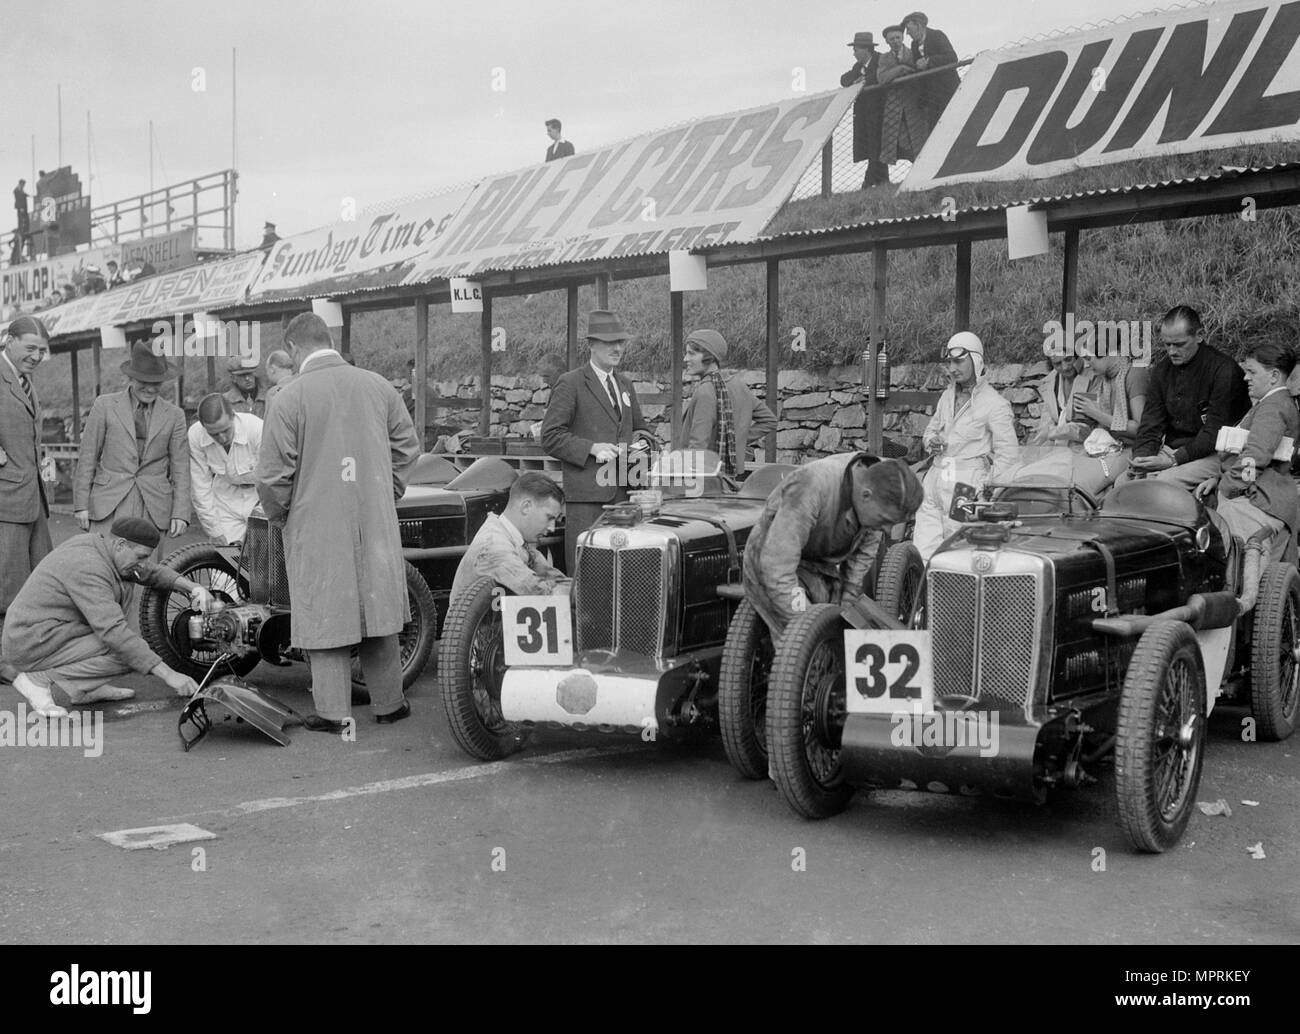 Three MG C type Midgets in the pits at the RAC TT Race, Ards Circuit, Belfast, 1932. Artist: Bill Brunell. - Stock Image